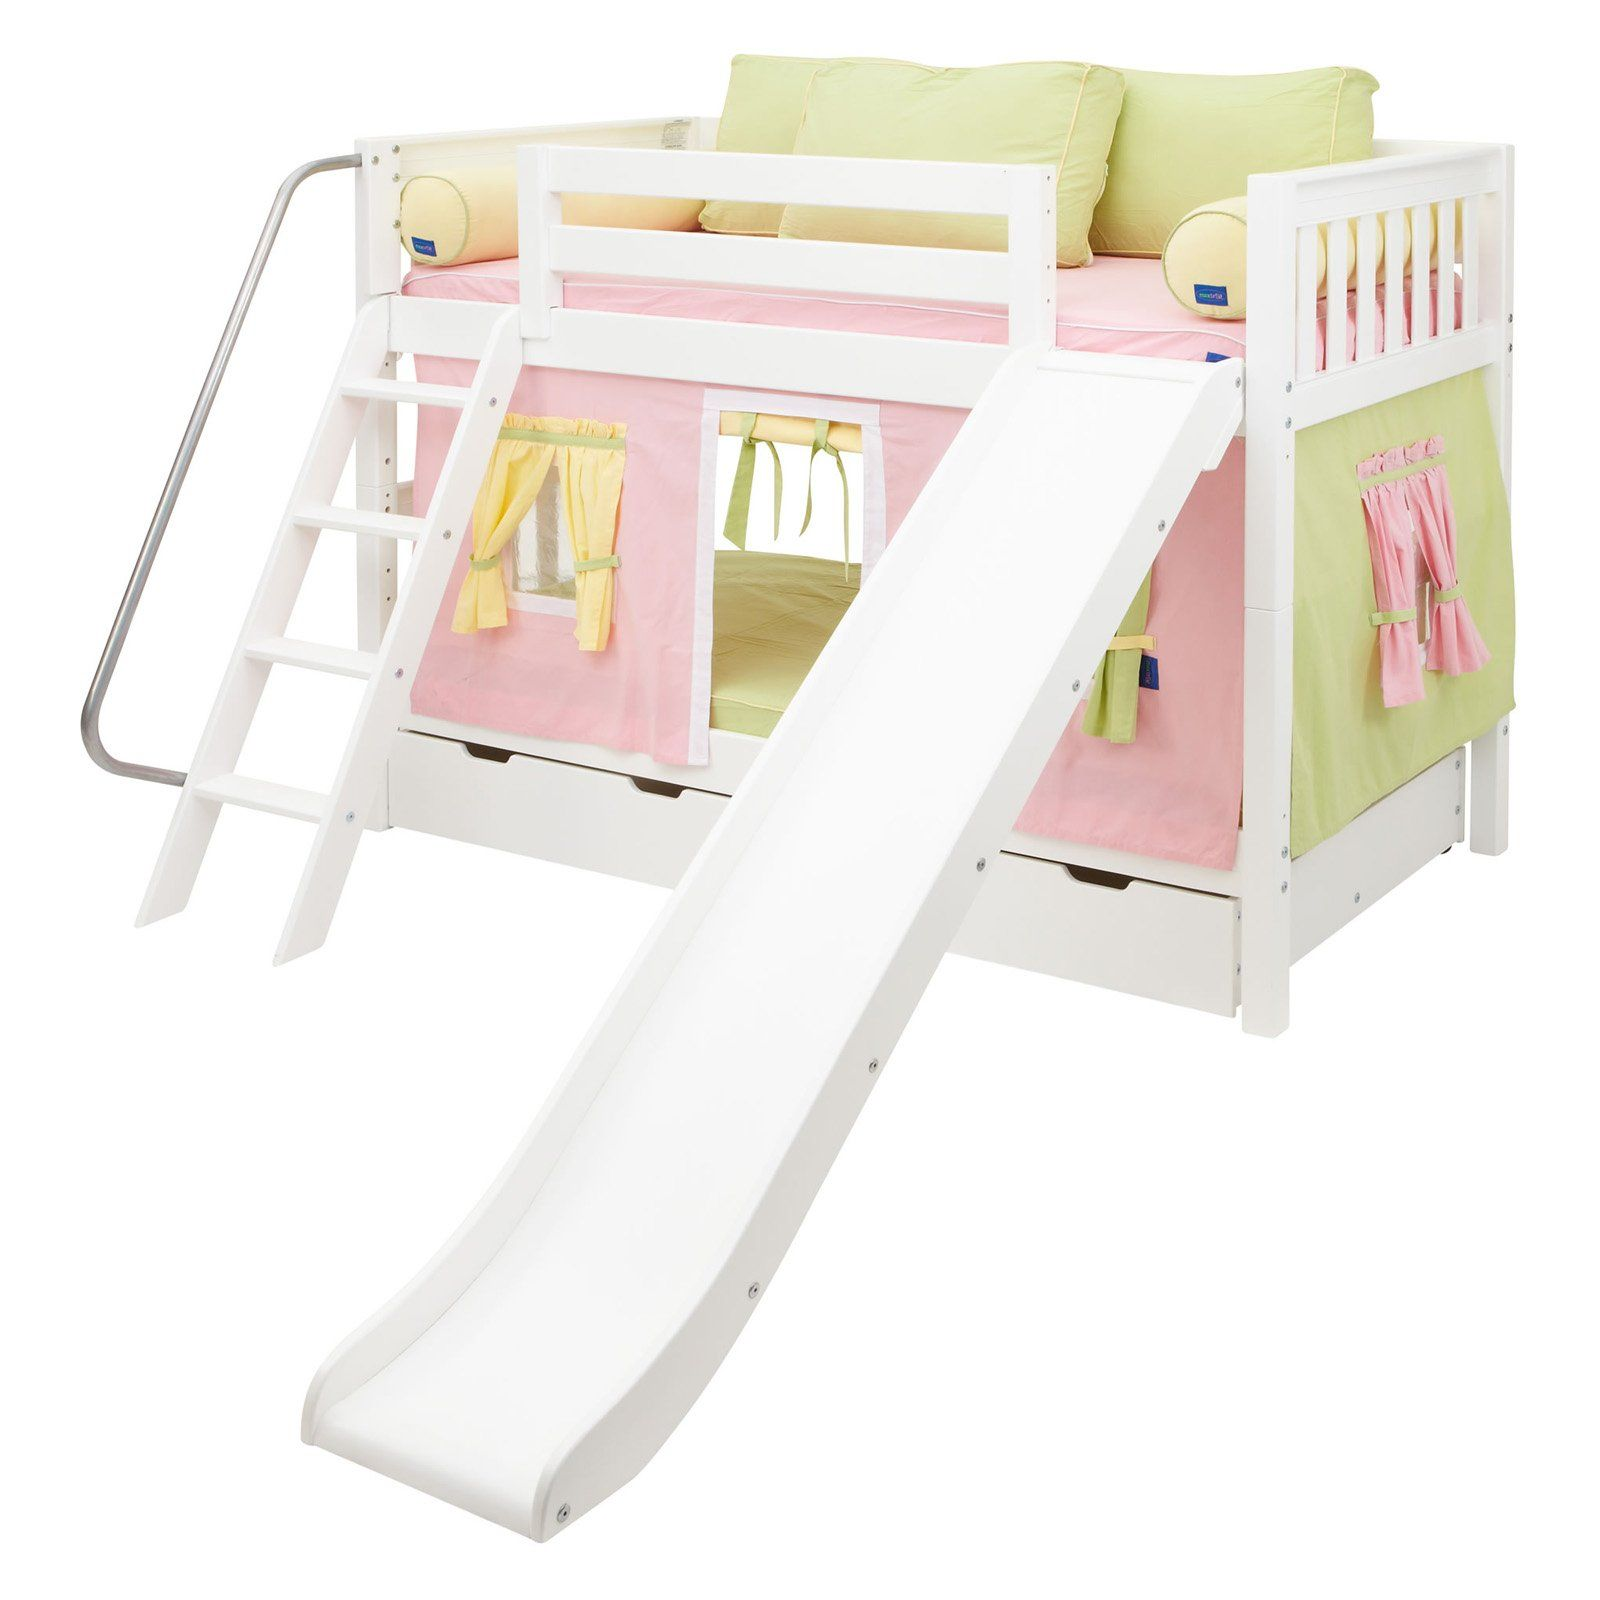 For Tayen s 5th birthday Laugh Girl Twin over Twin Slat Slide Tent